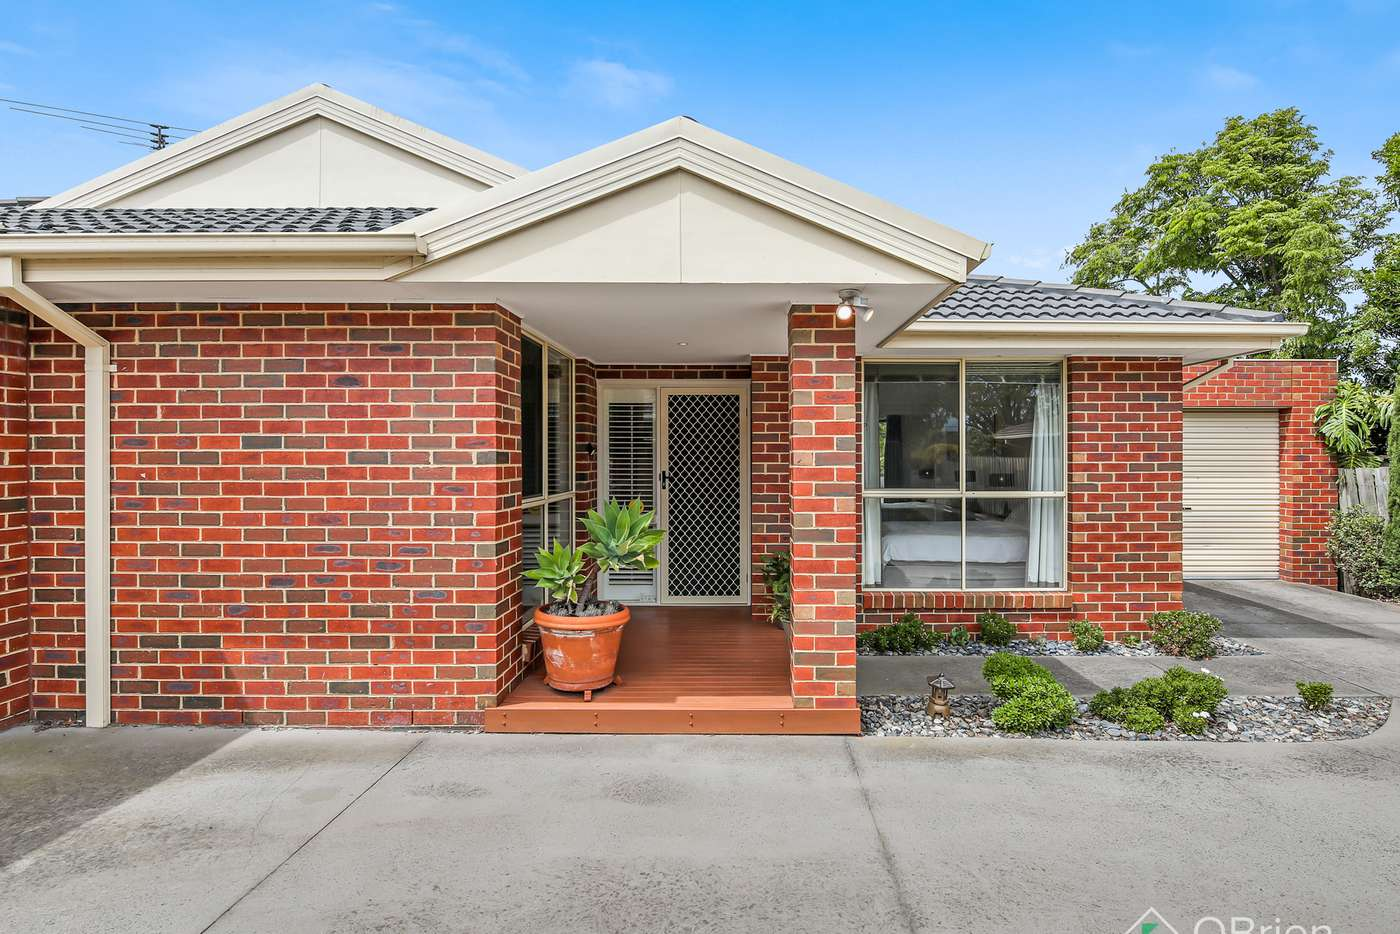 Main view of Homely unit listing, 2/126 Wanda Street, Mulgrave VIC 3170